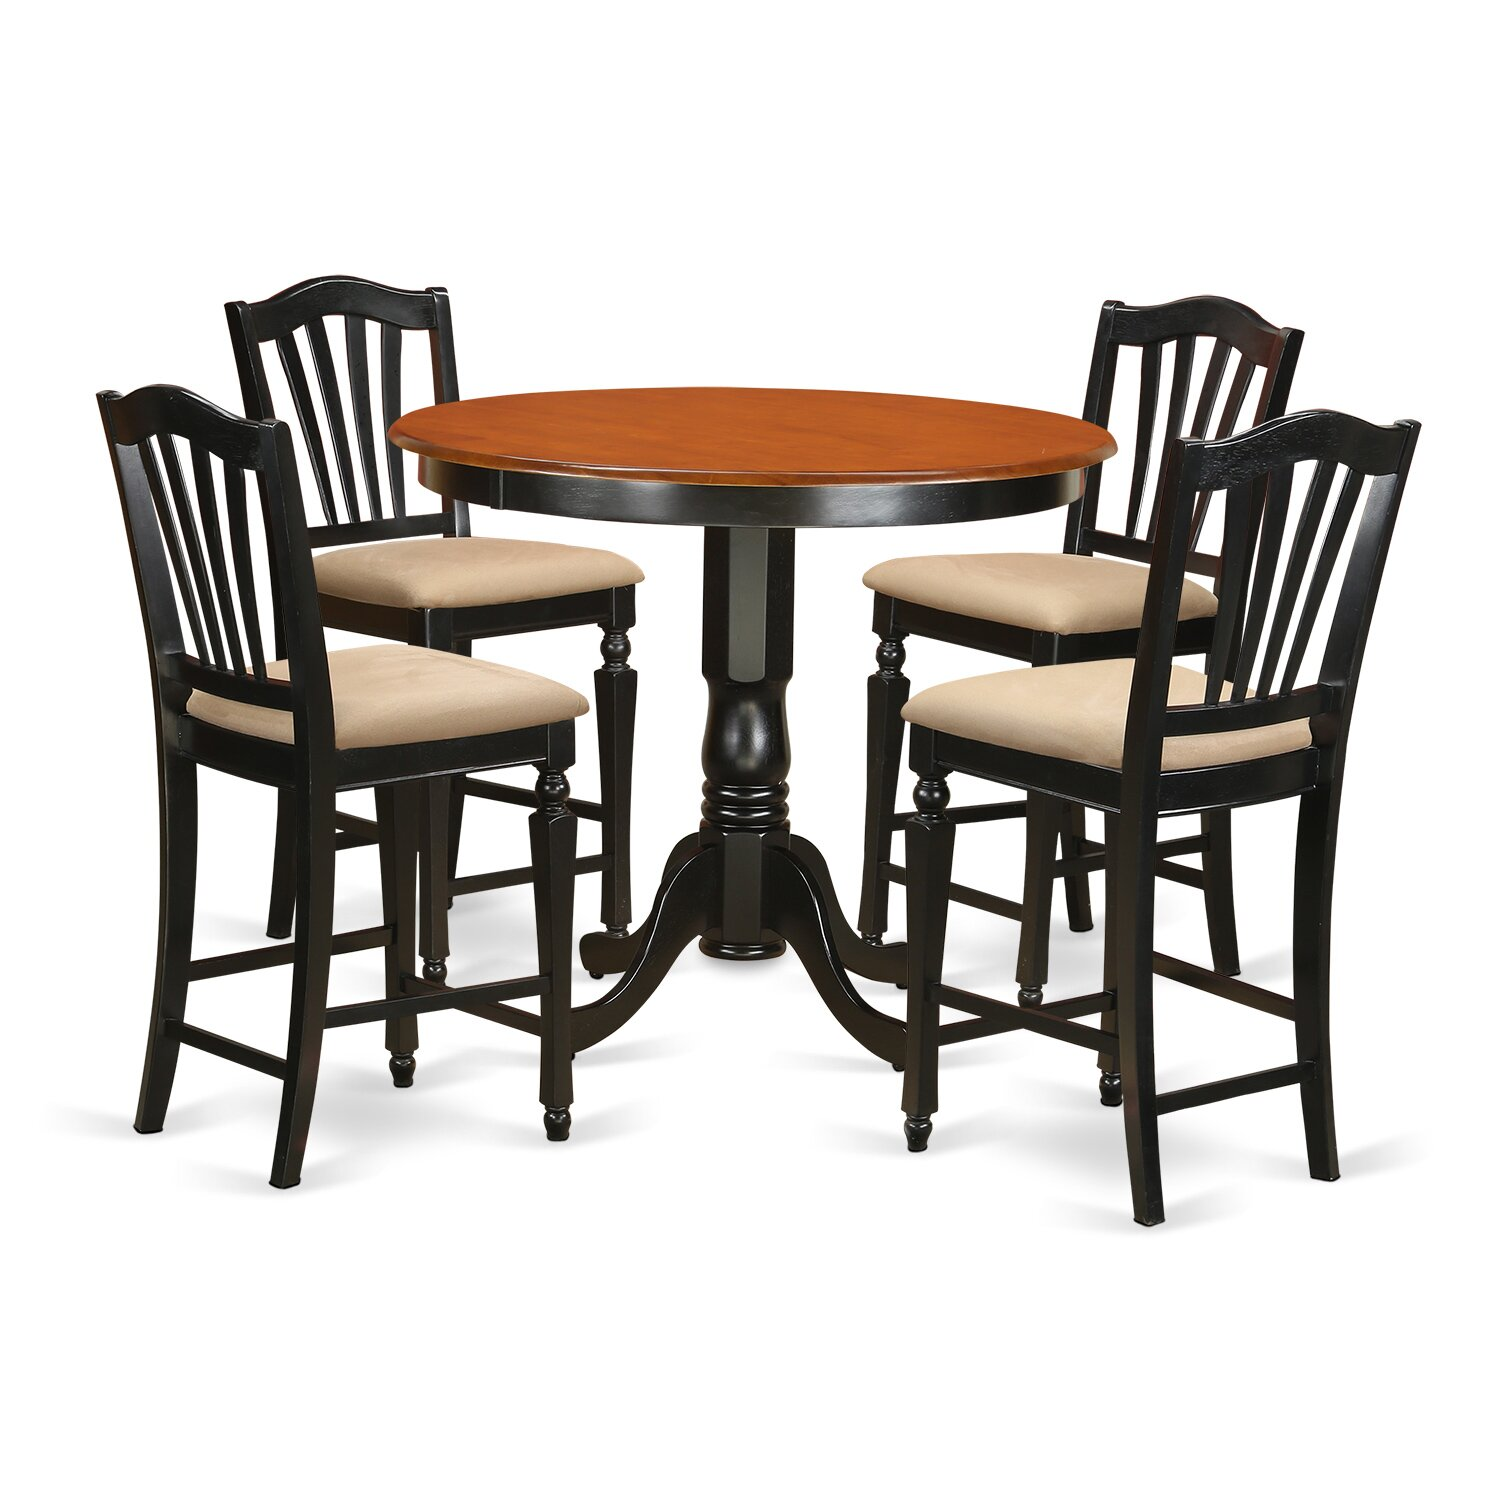 East West Trenton 5 Piece Counter Height Pub Table Set